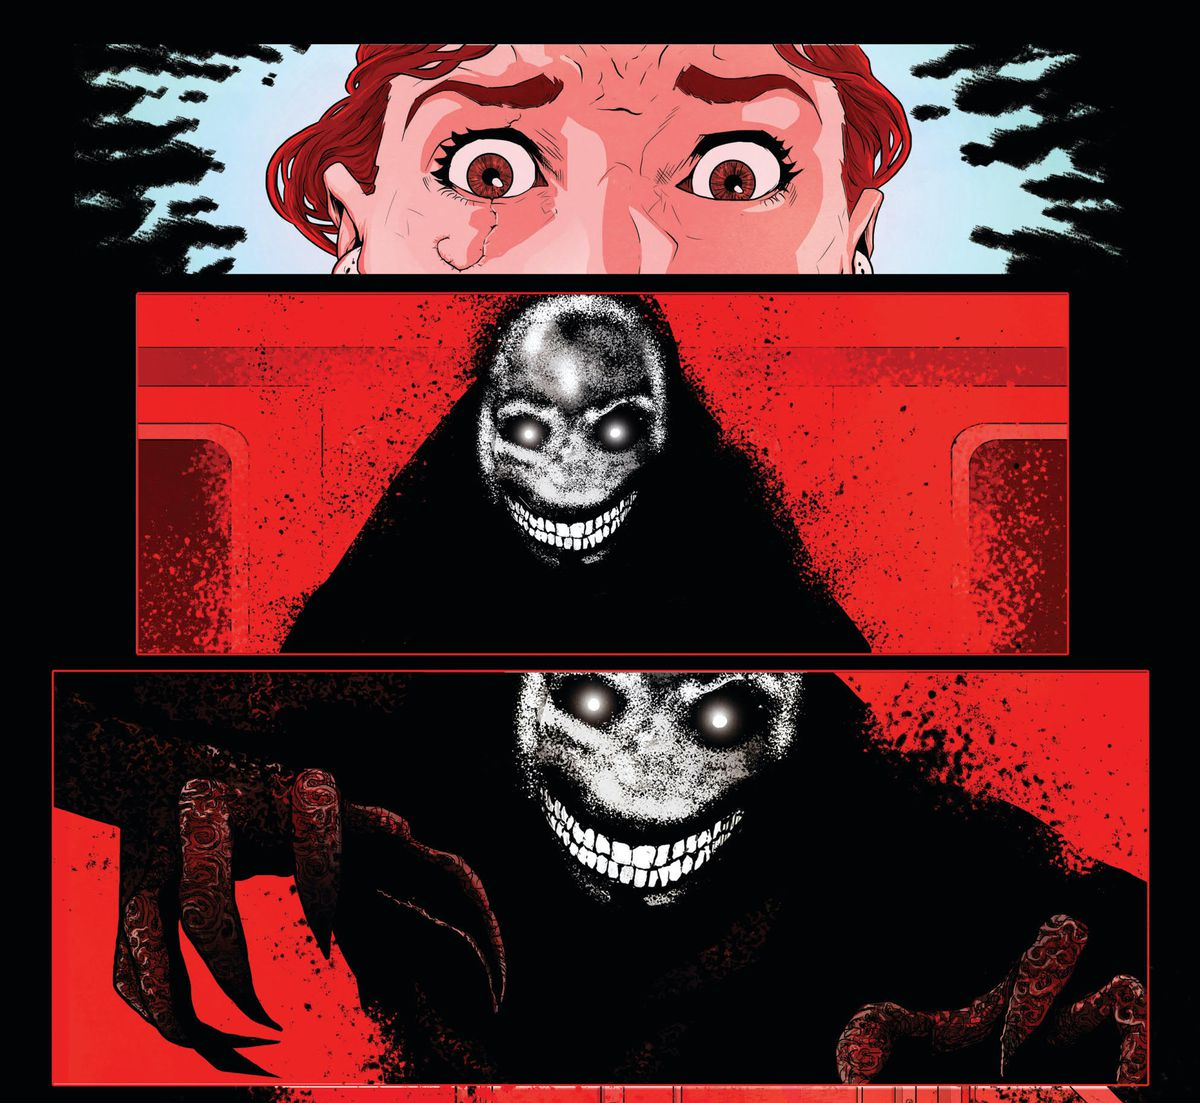 Daisy's eyes go wide in fear. In her reddened vision, she sees a dark humanoid figure with clawed hands and a white rictus grin, the more digital style to it's shape giving it an unsettling contrast with the rest of the art, in The Red Mother #2, Boom Studios (2020).